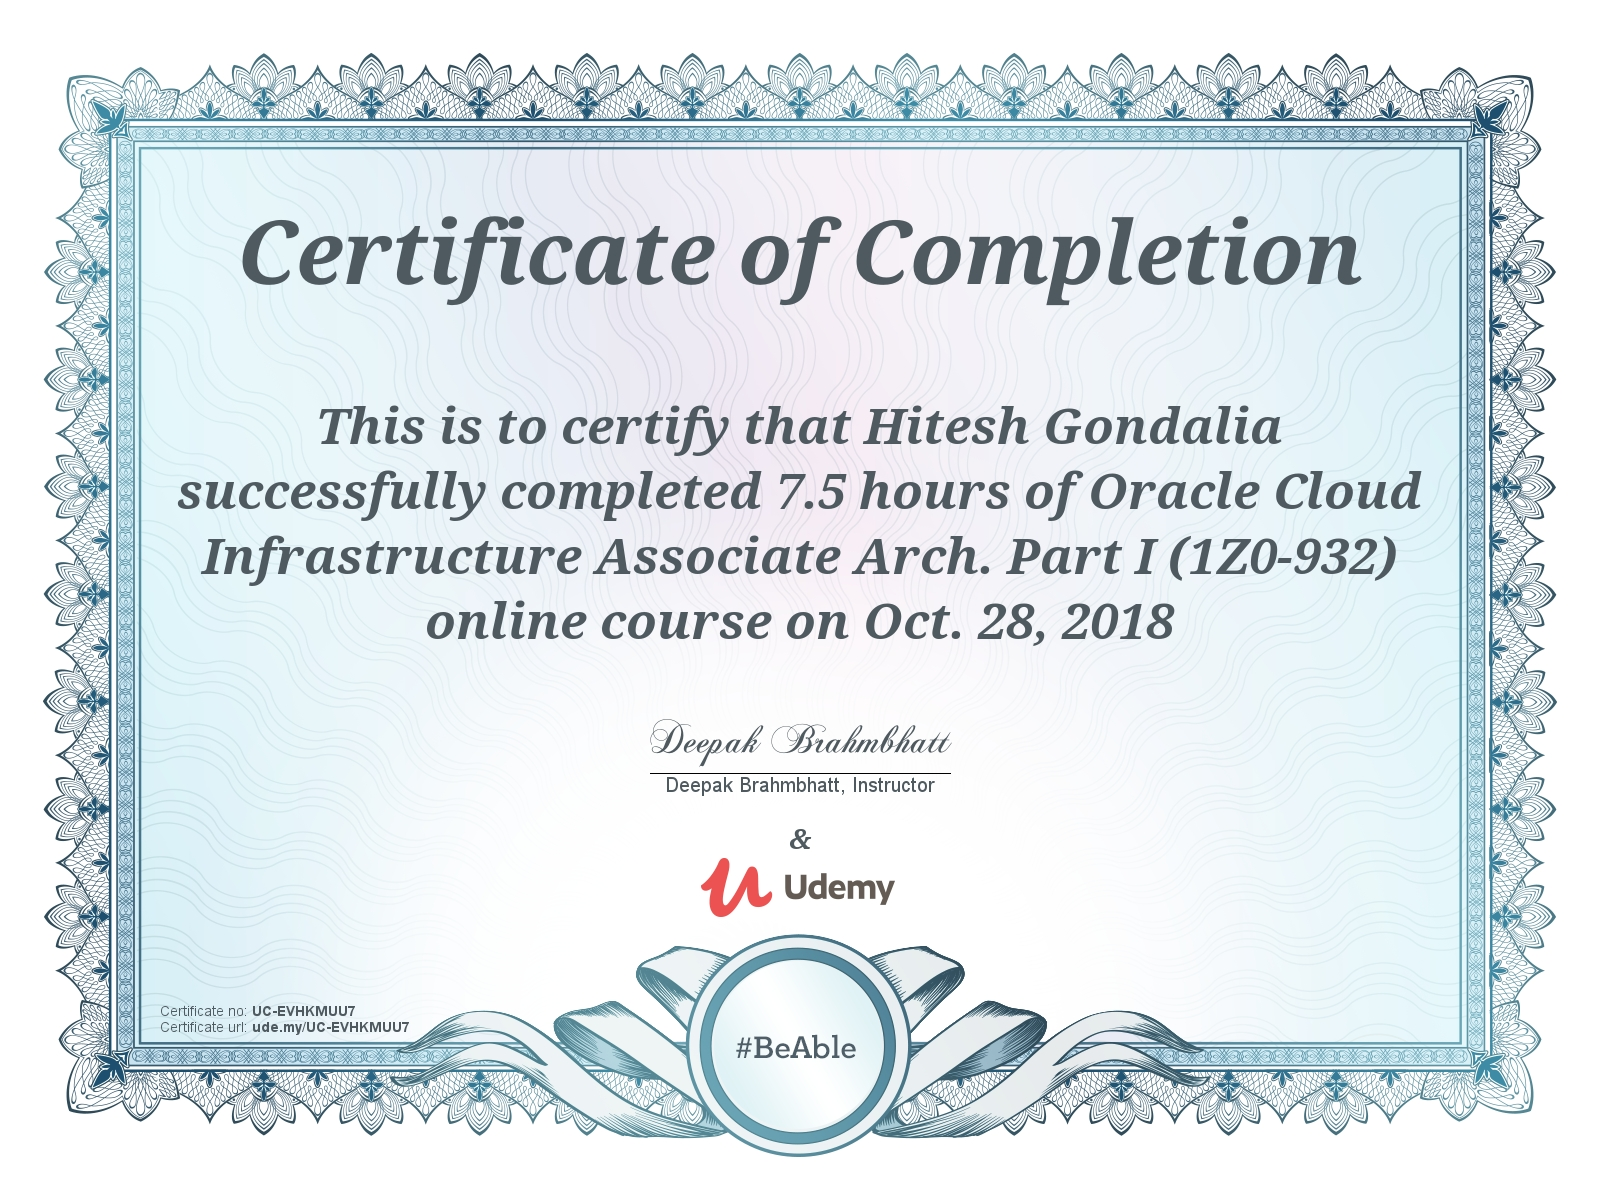 Oracle Cloud Infrastructure Associate Arch. Part I (1Z0-932)